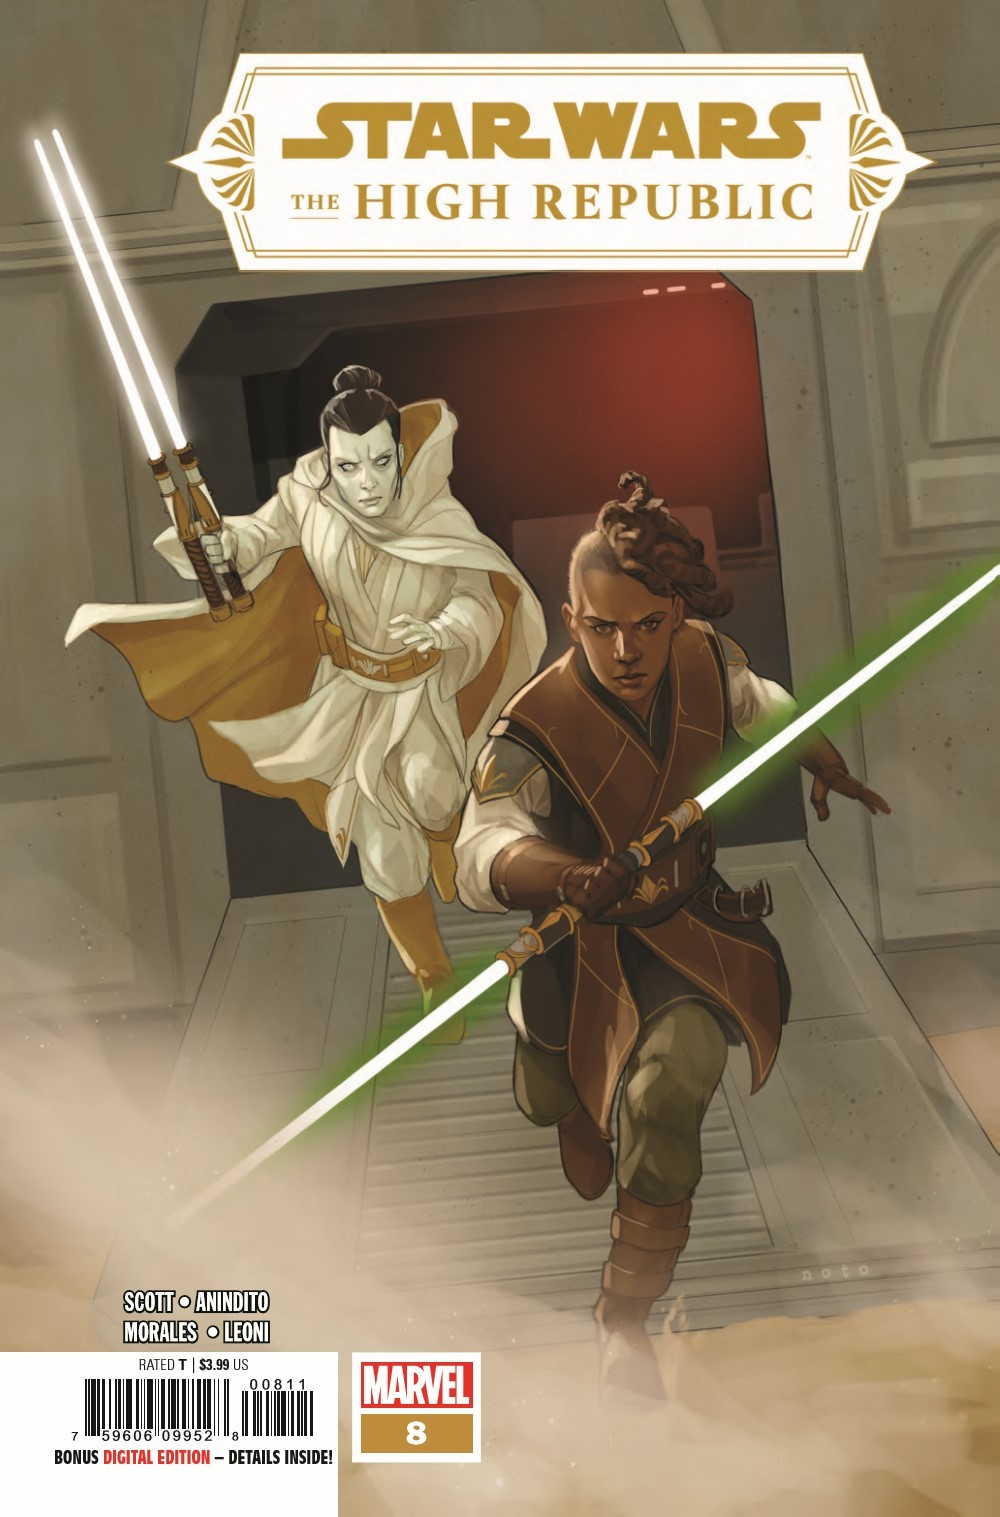 STWHIGHREP2021008_Preview-1 ComicList Previews: STAR WARS THE HIGH REPUBLIC #8